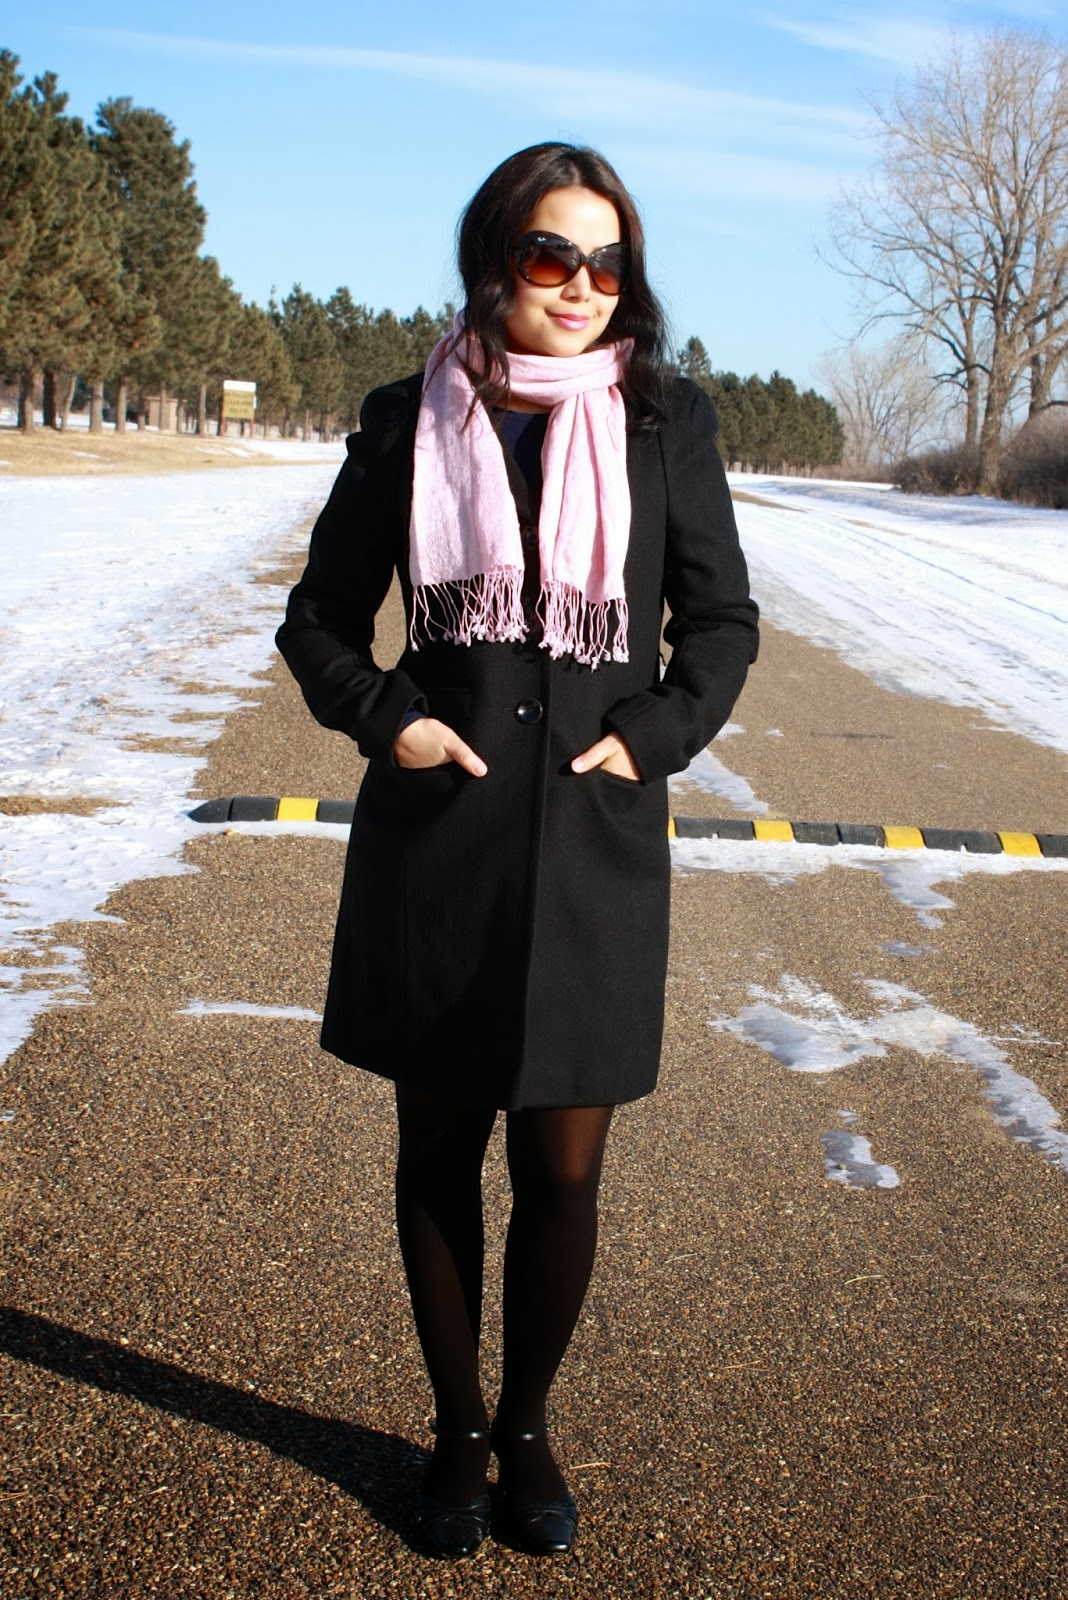 Cactus and Cucumber : Black coat and pink scarf ..